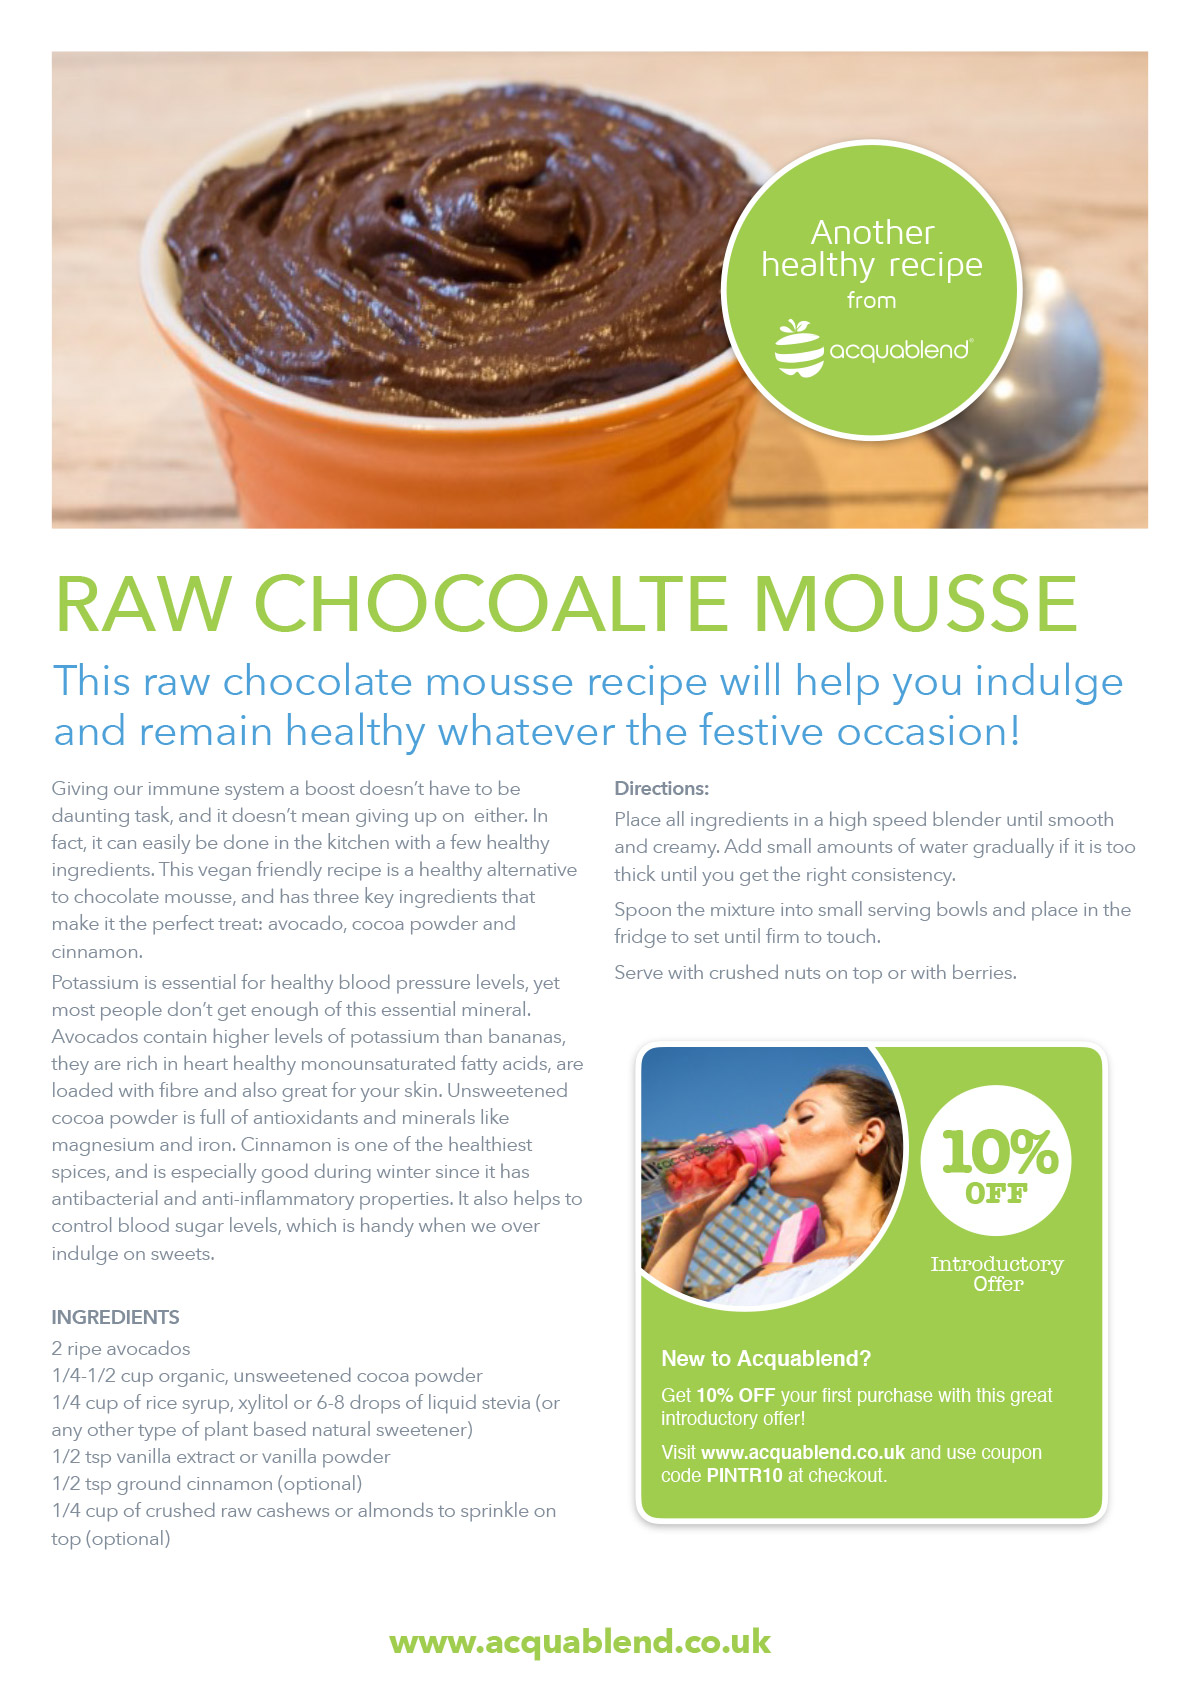 Raw chocolate mousse from Acquablend.